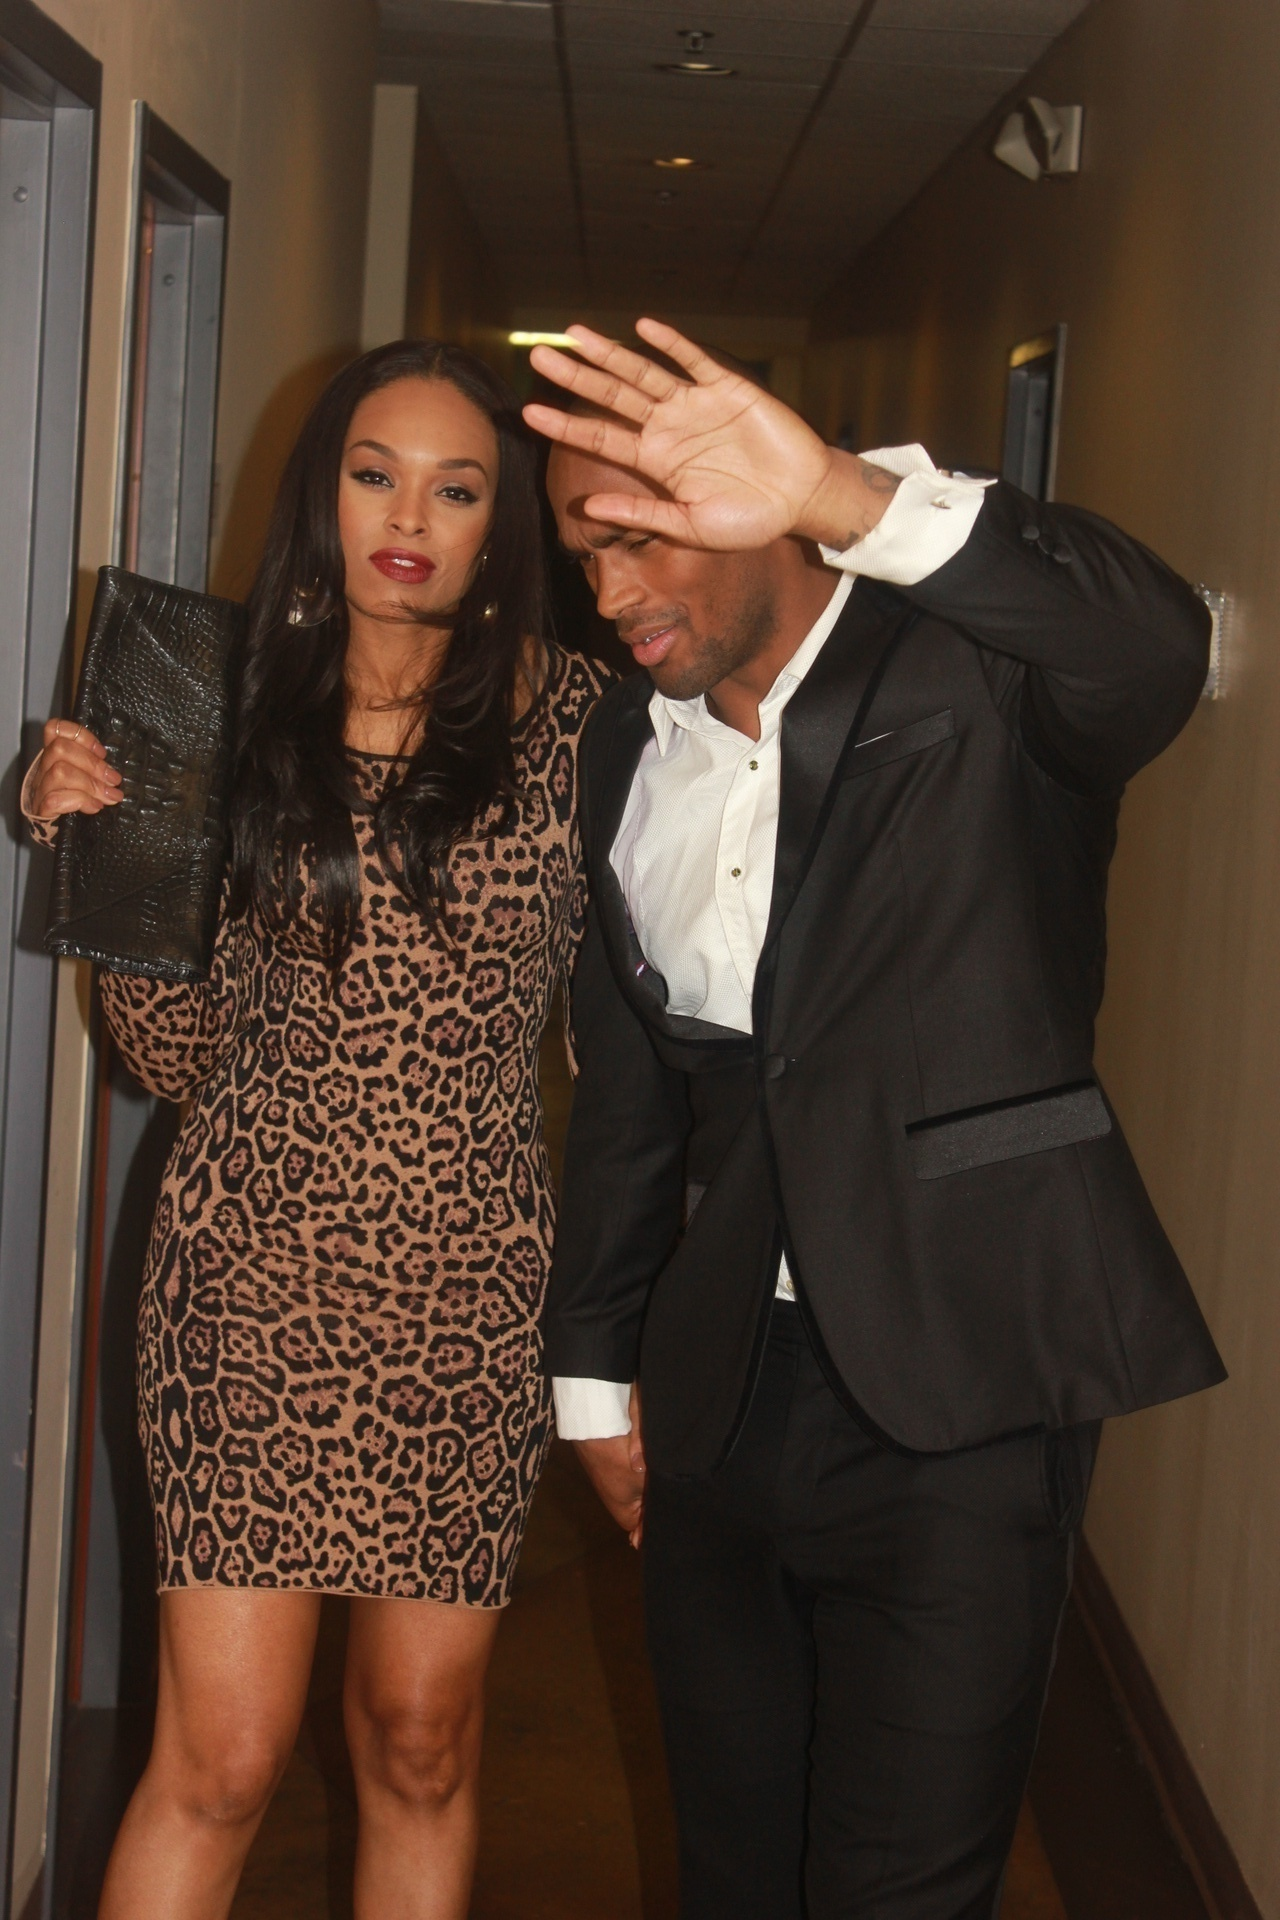 Demetria McKinney and Keith Carlos on set of Demetria McKinney's video shoot - Trade It All